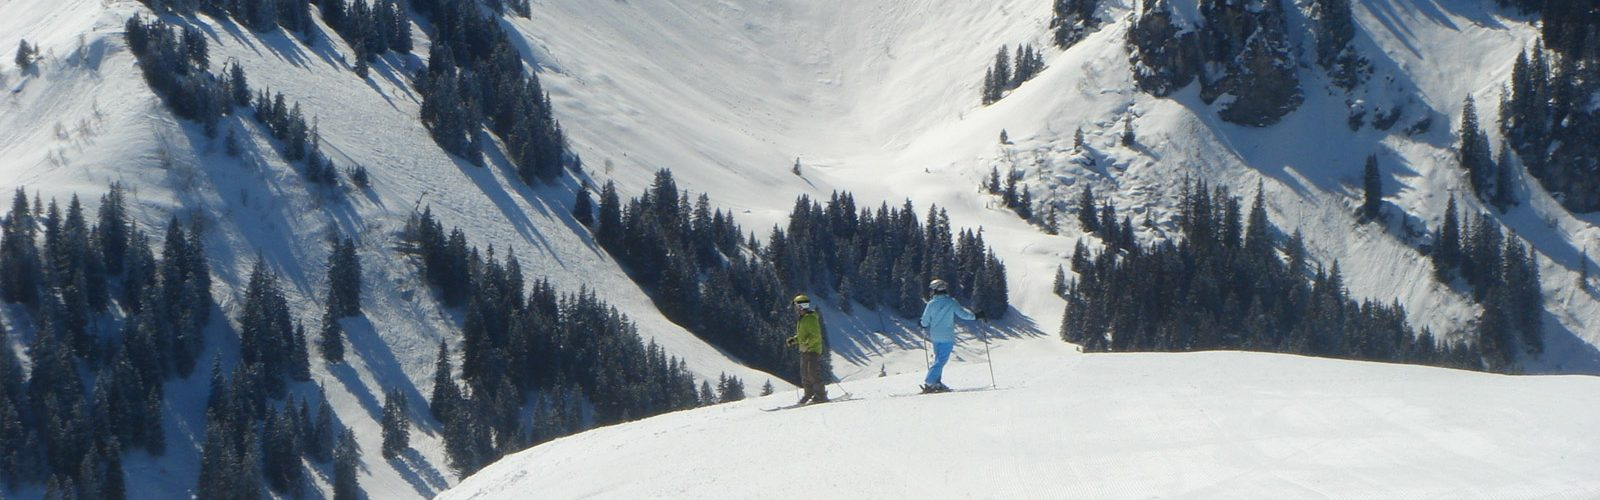 Chillout Mountain skiers atop